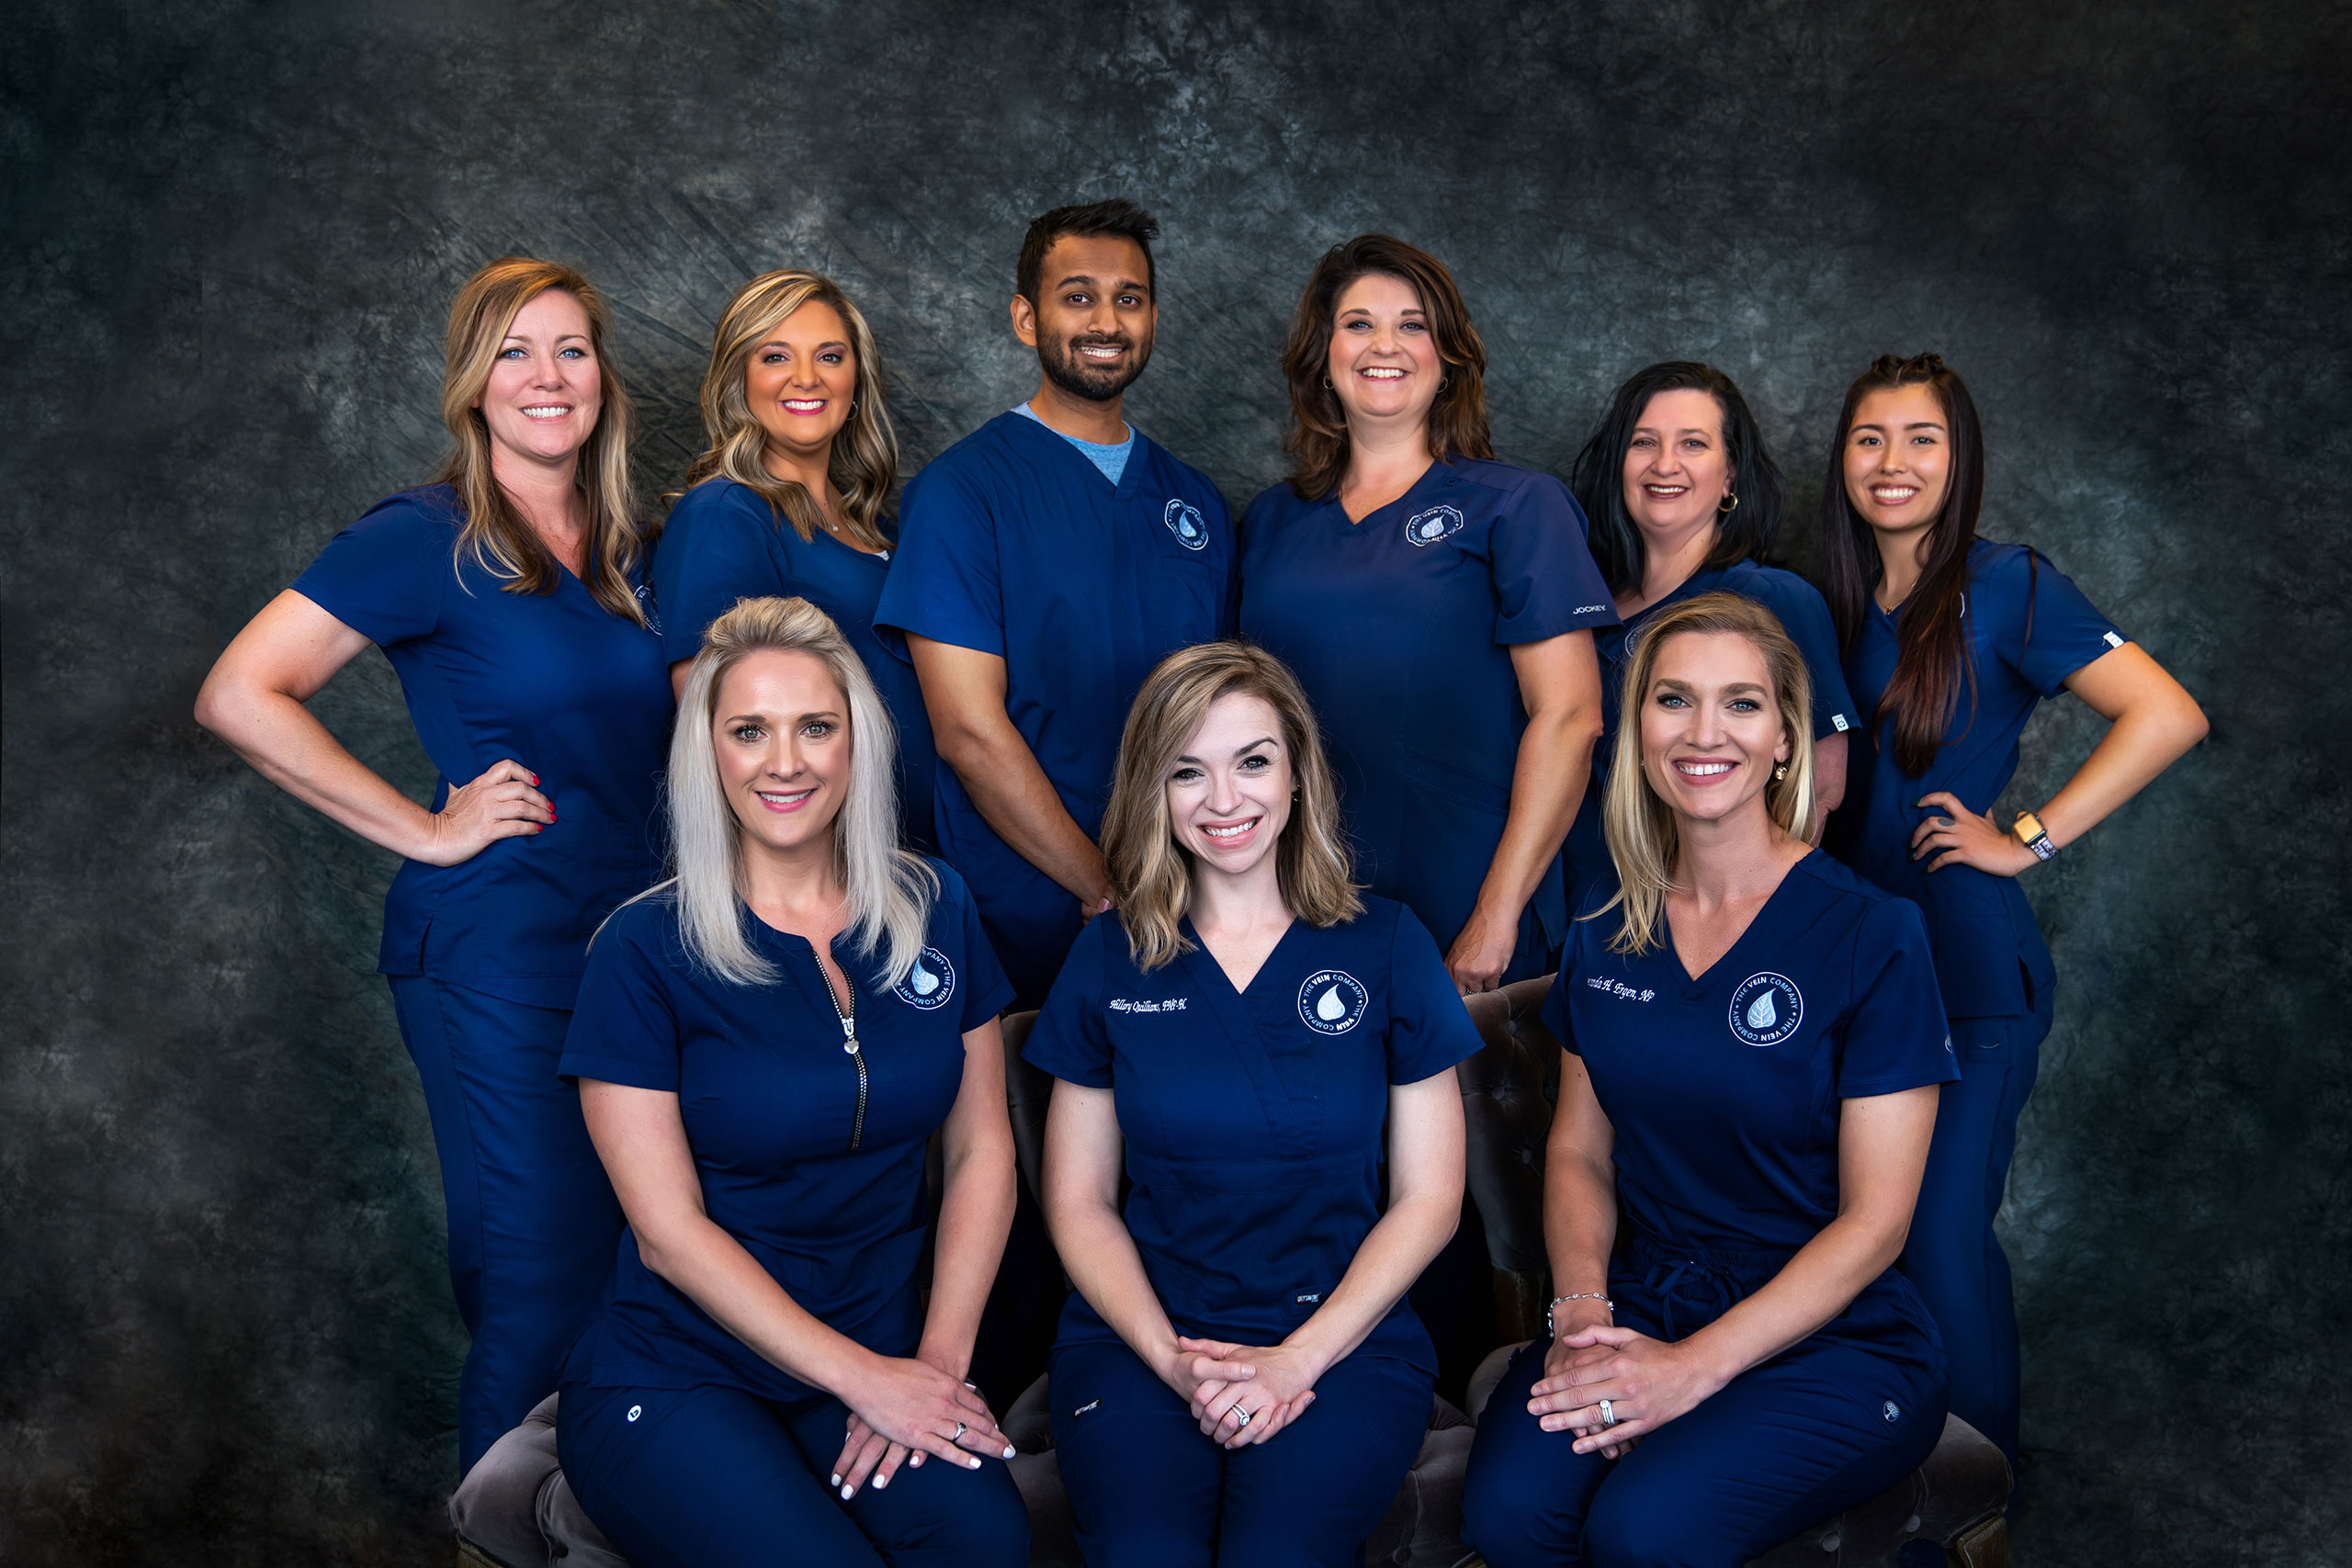 Sevierville & Knoxville Staff